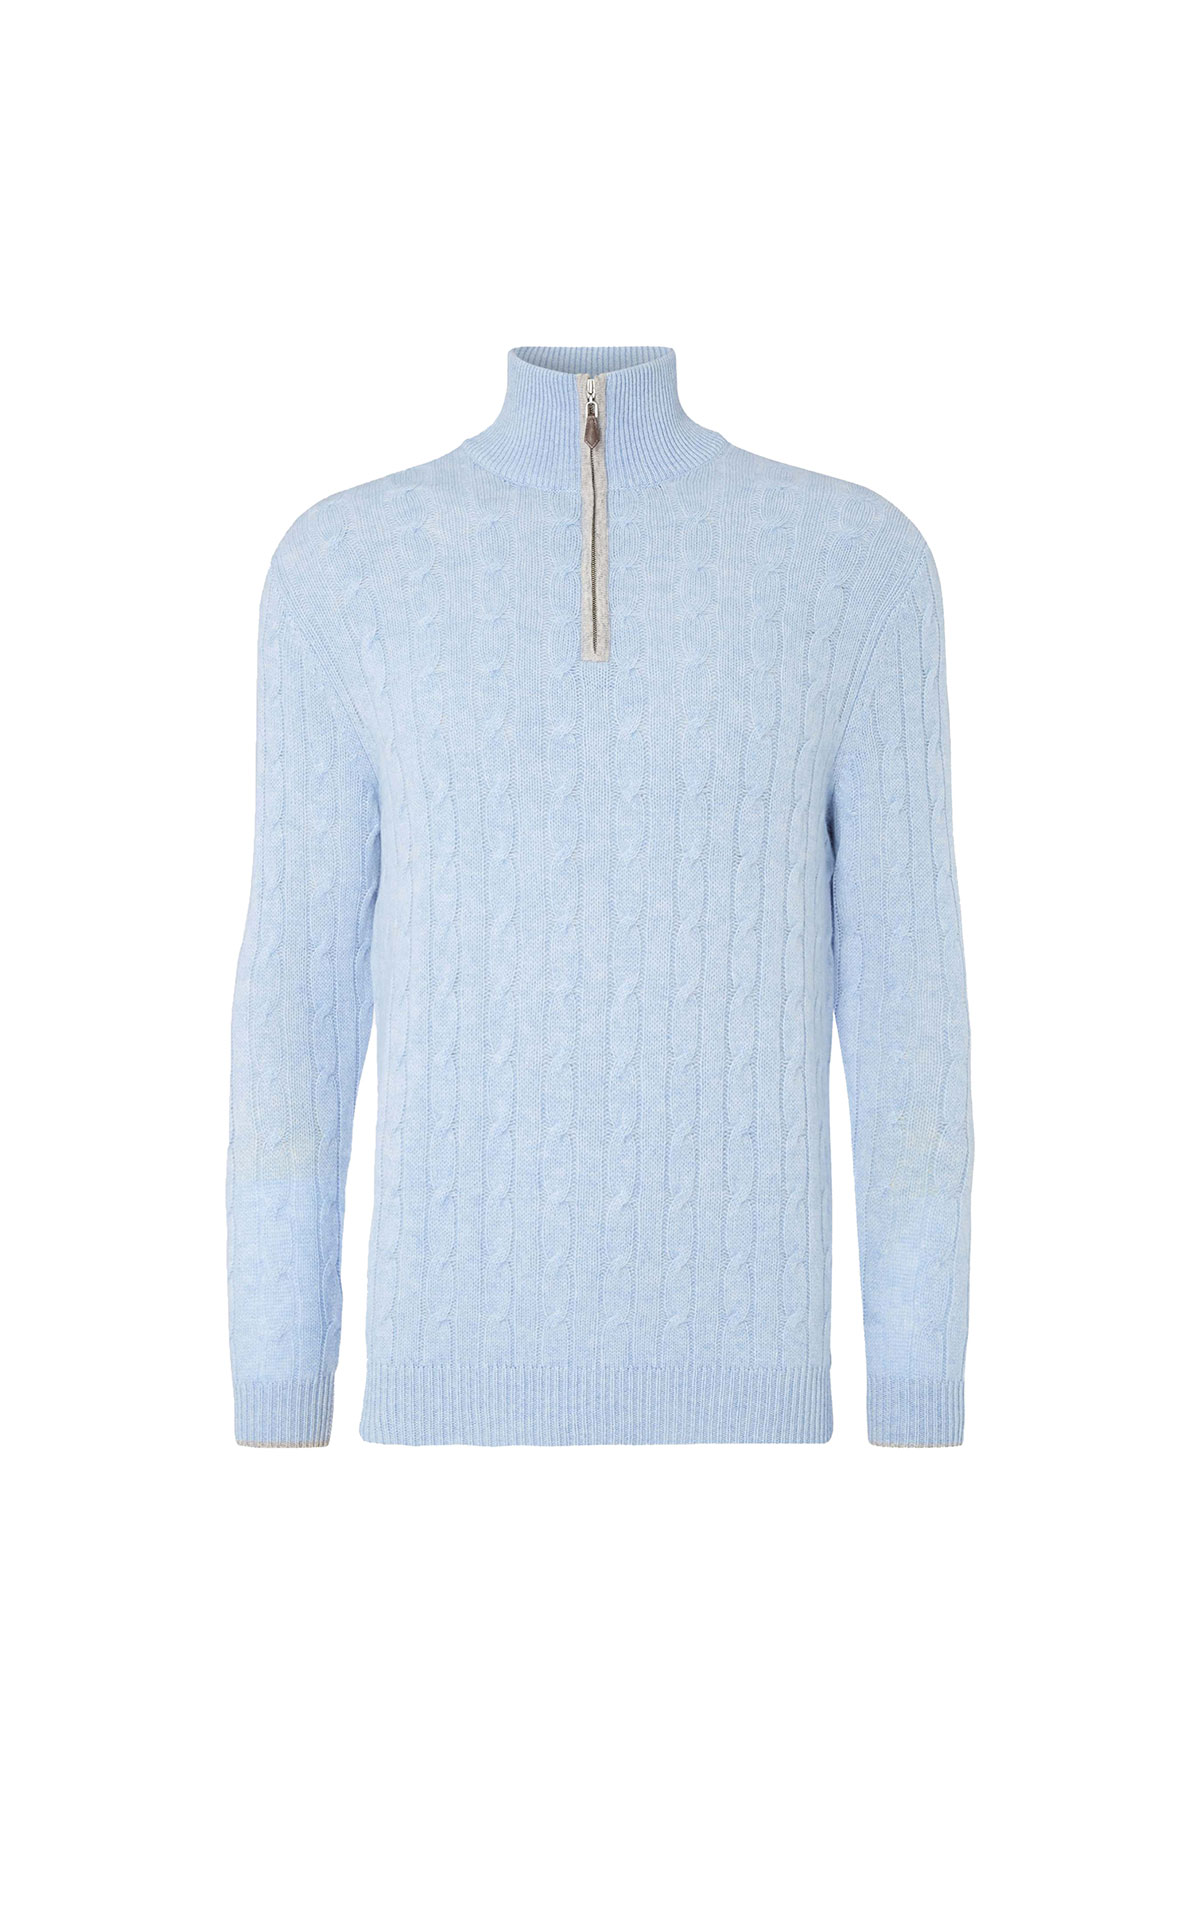 N.Peal Men's cable 1/2 zip  from Bicester Village